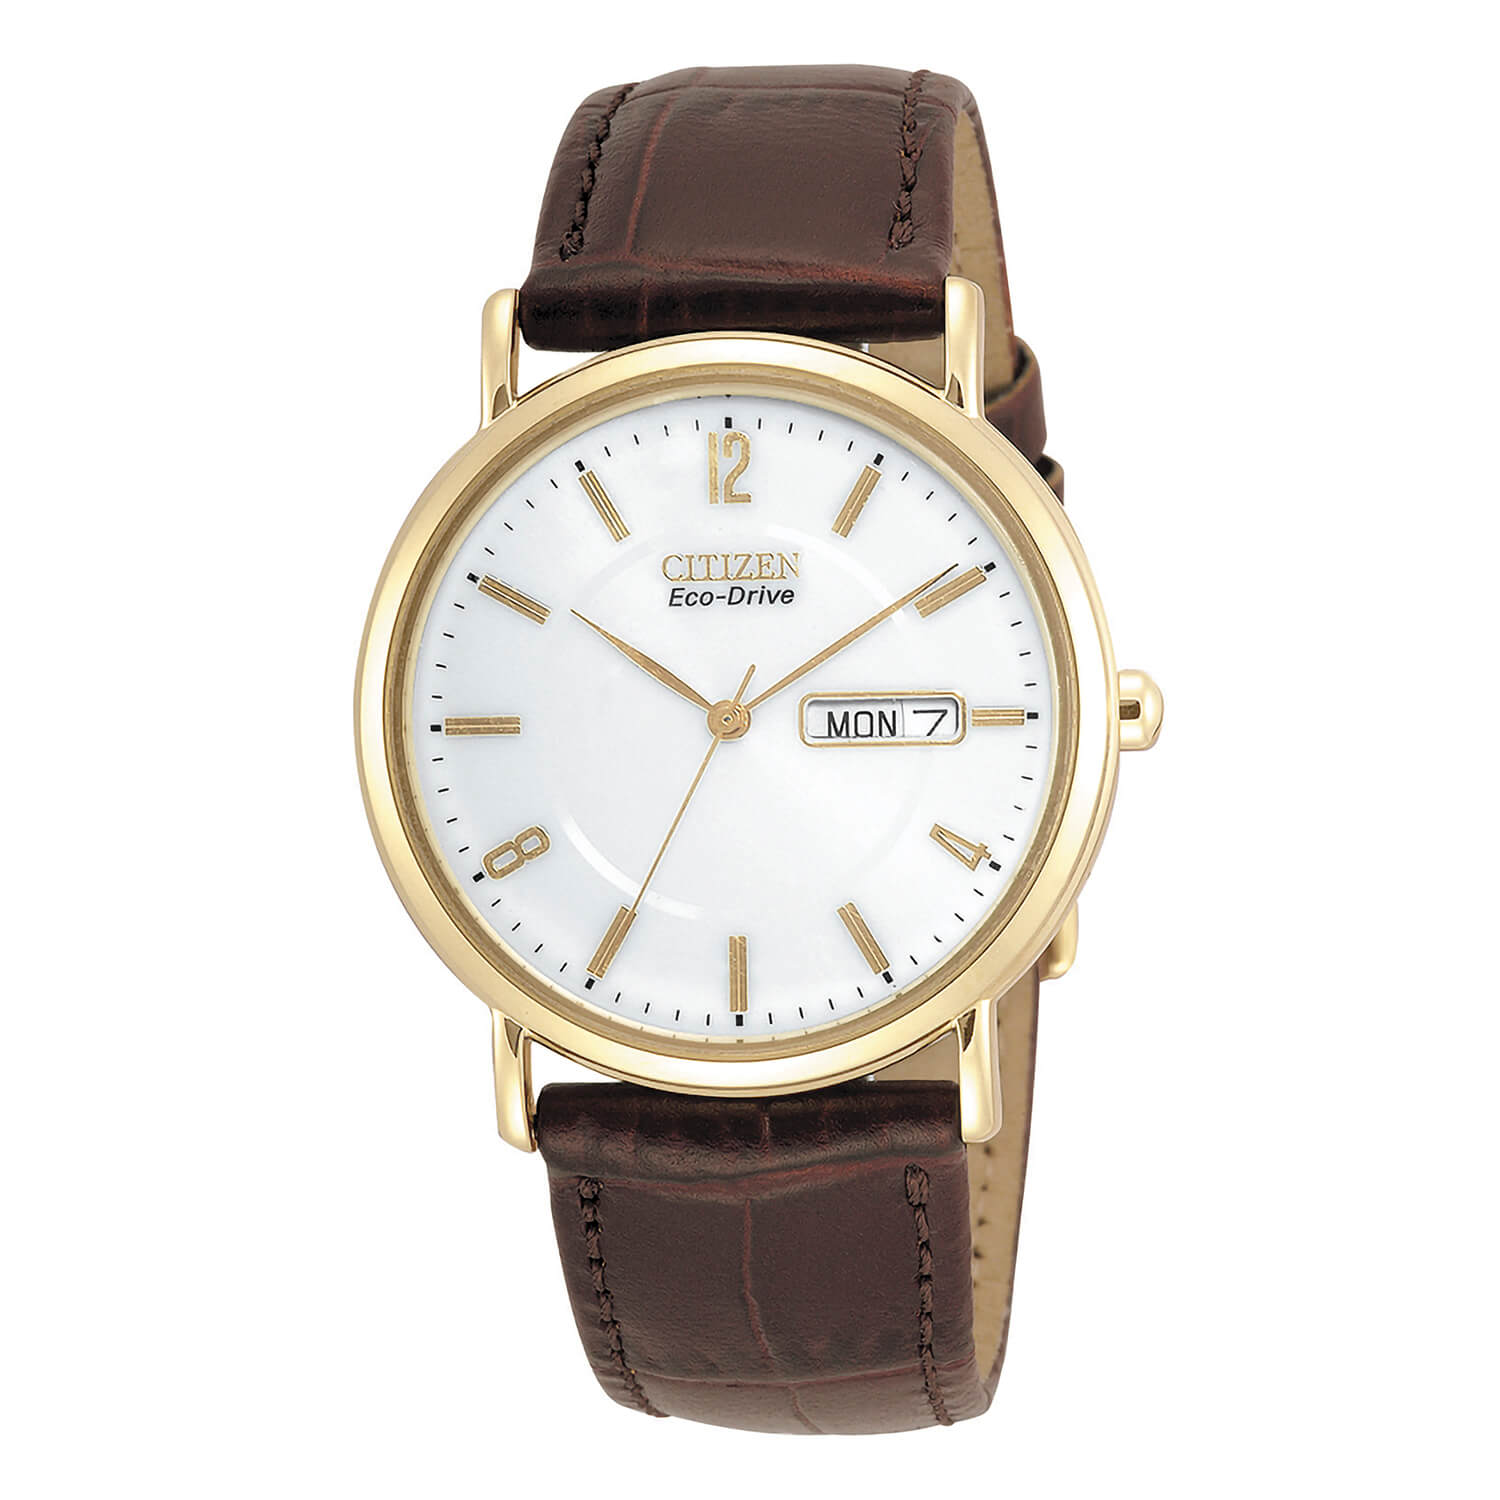 Citizen Eco-Drive Round White Dial with Brown Strap